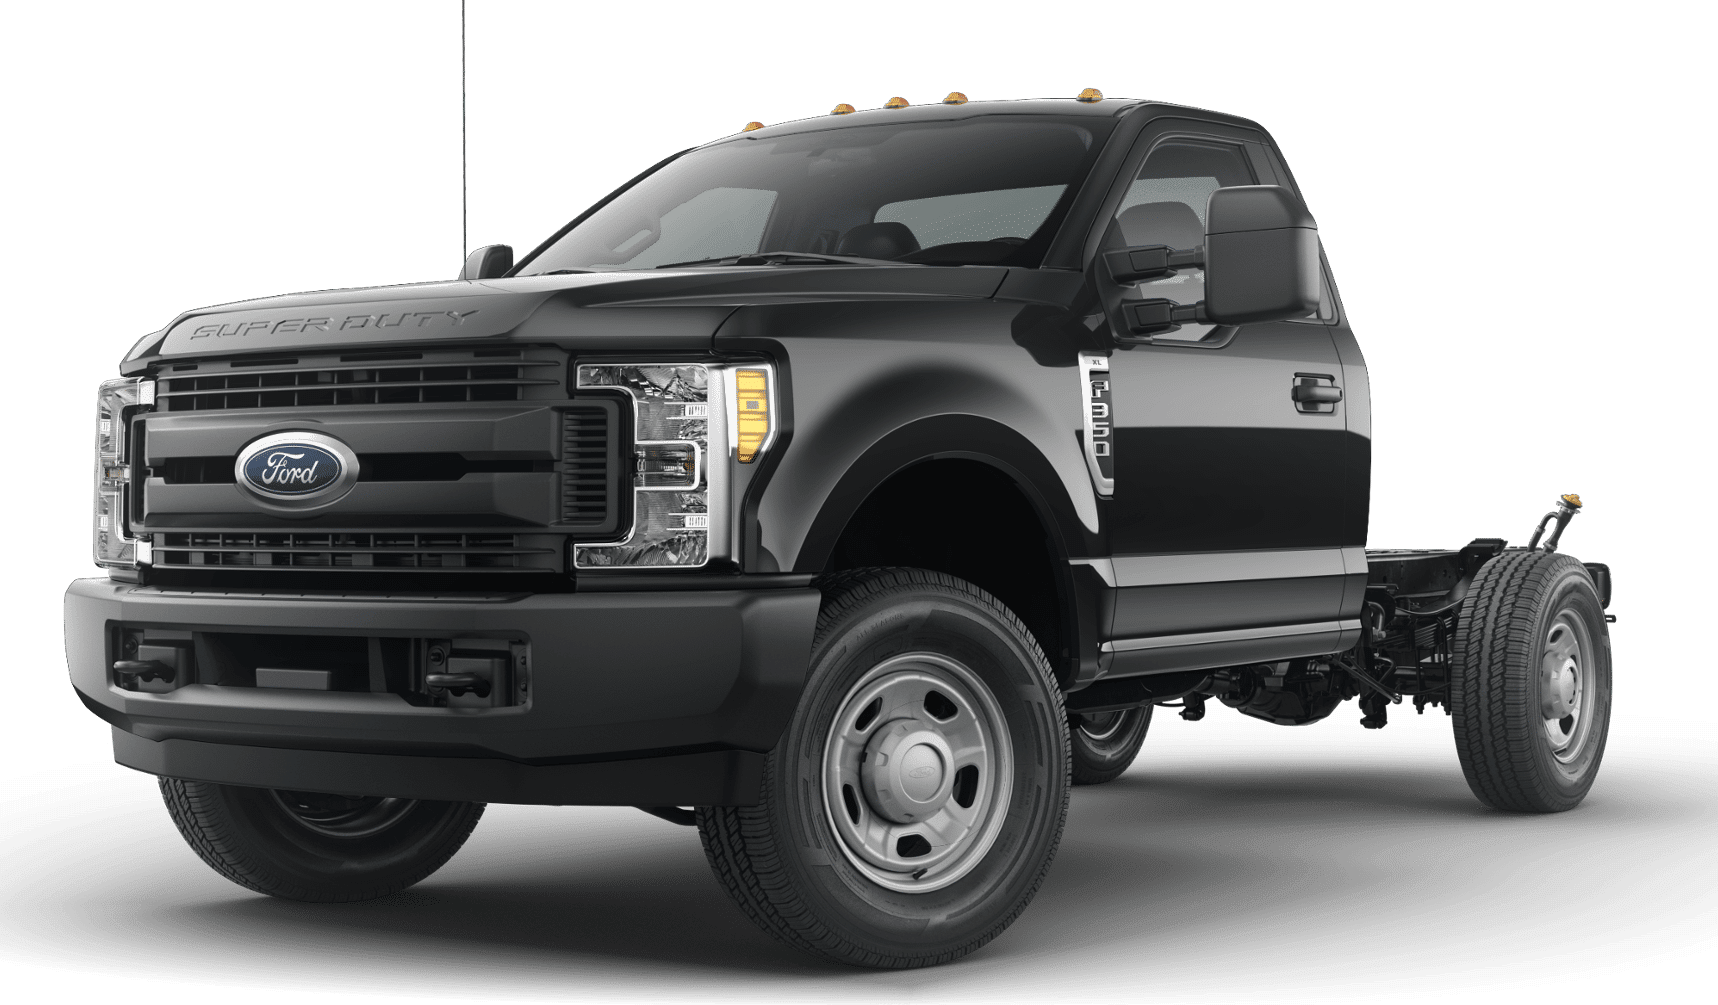 2019 Ford Chassis Cab F 350 Srw Xl Price In Uae Specs Amp Review In